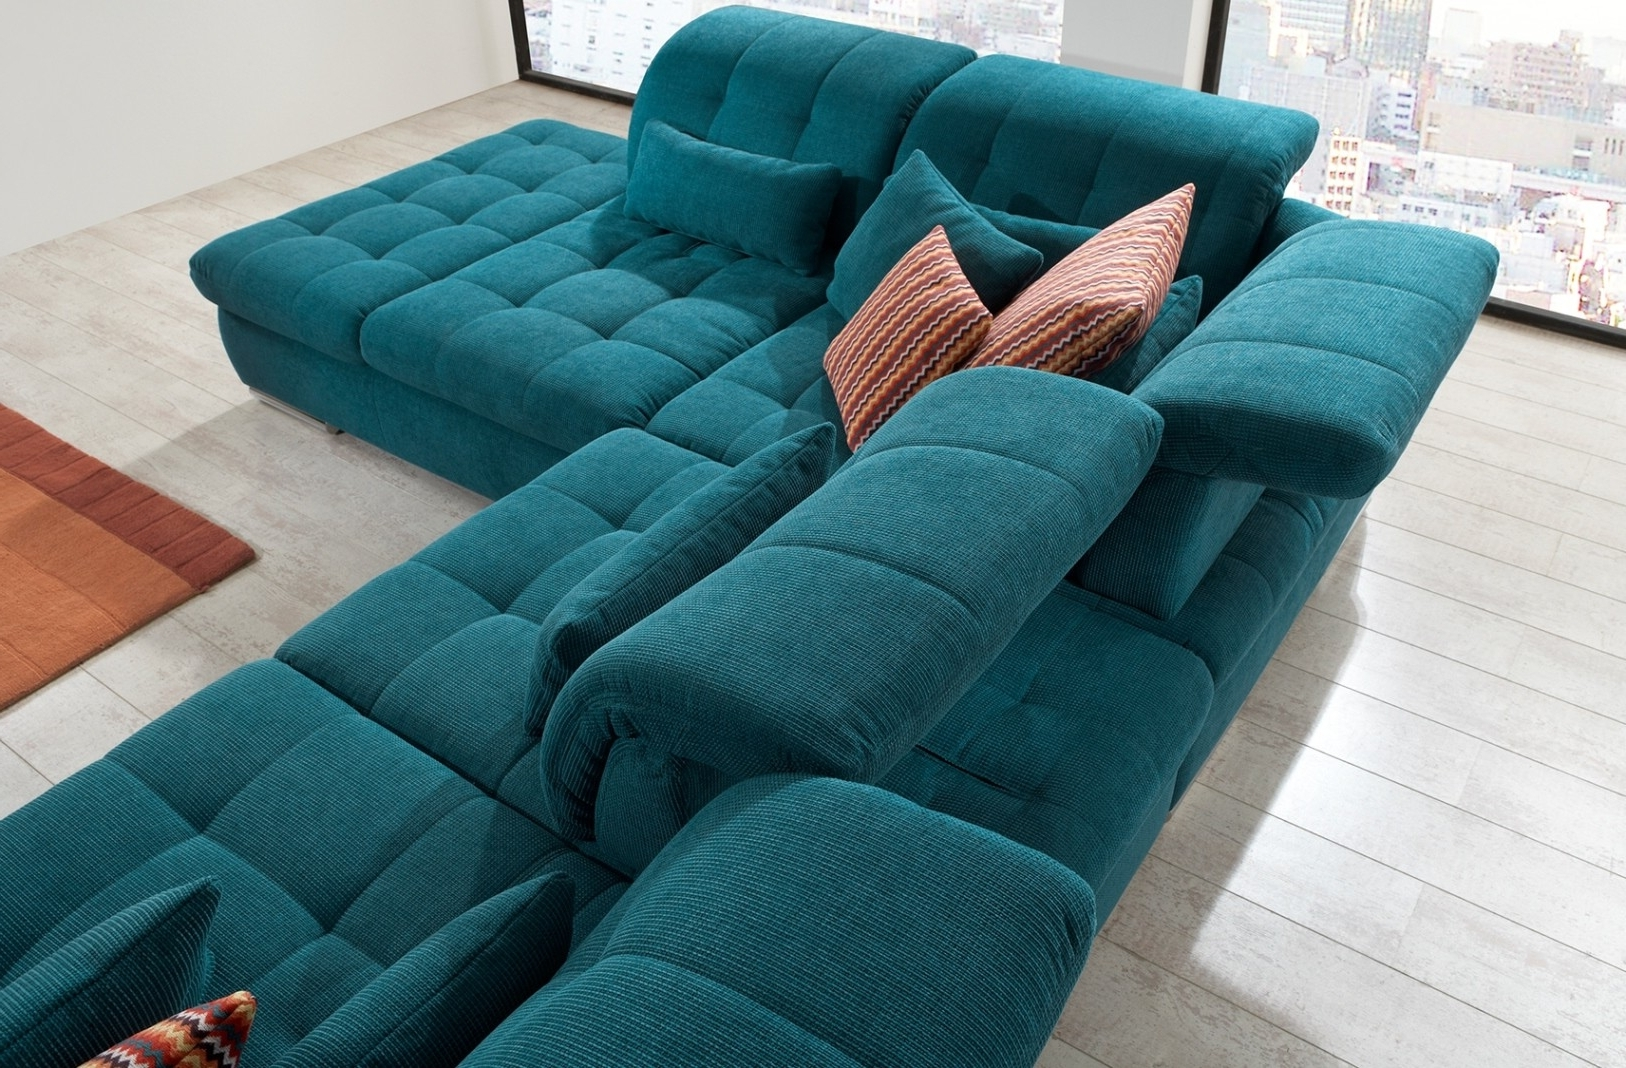 Green Sectional Sofas Regarding Best And Newest Alpine Sectional Sofa In Green Fabric (View 10 of 15)